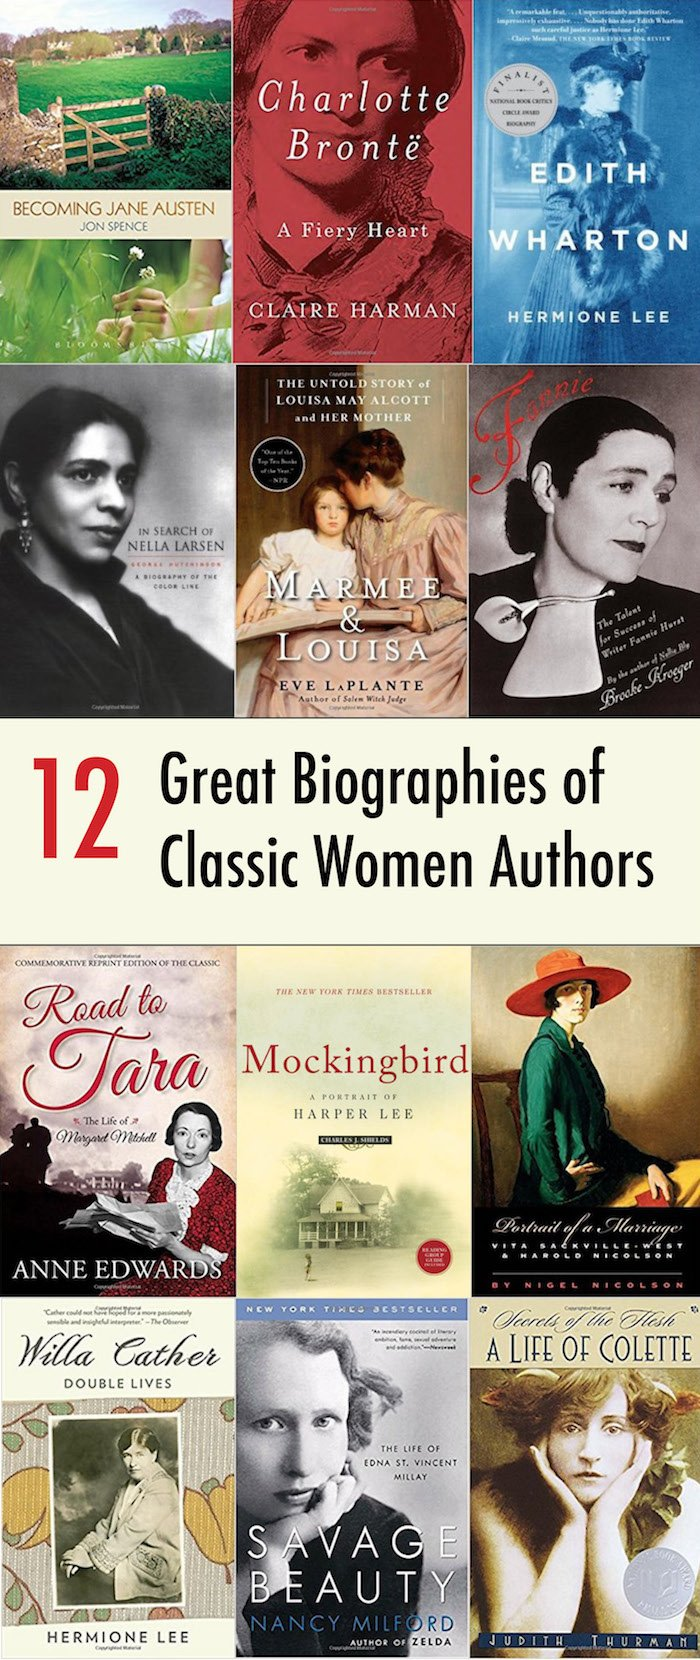 2 Biographies of women authors